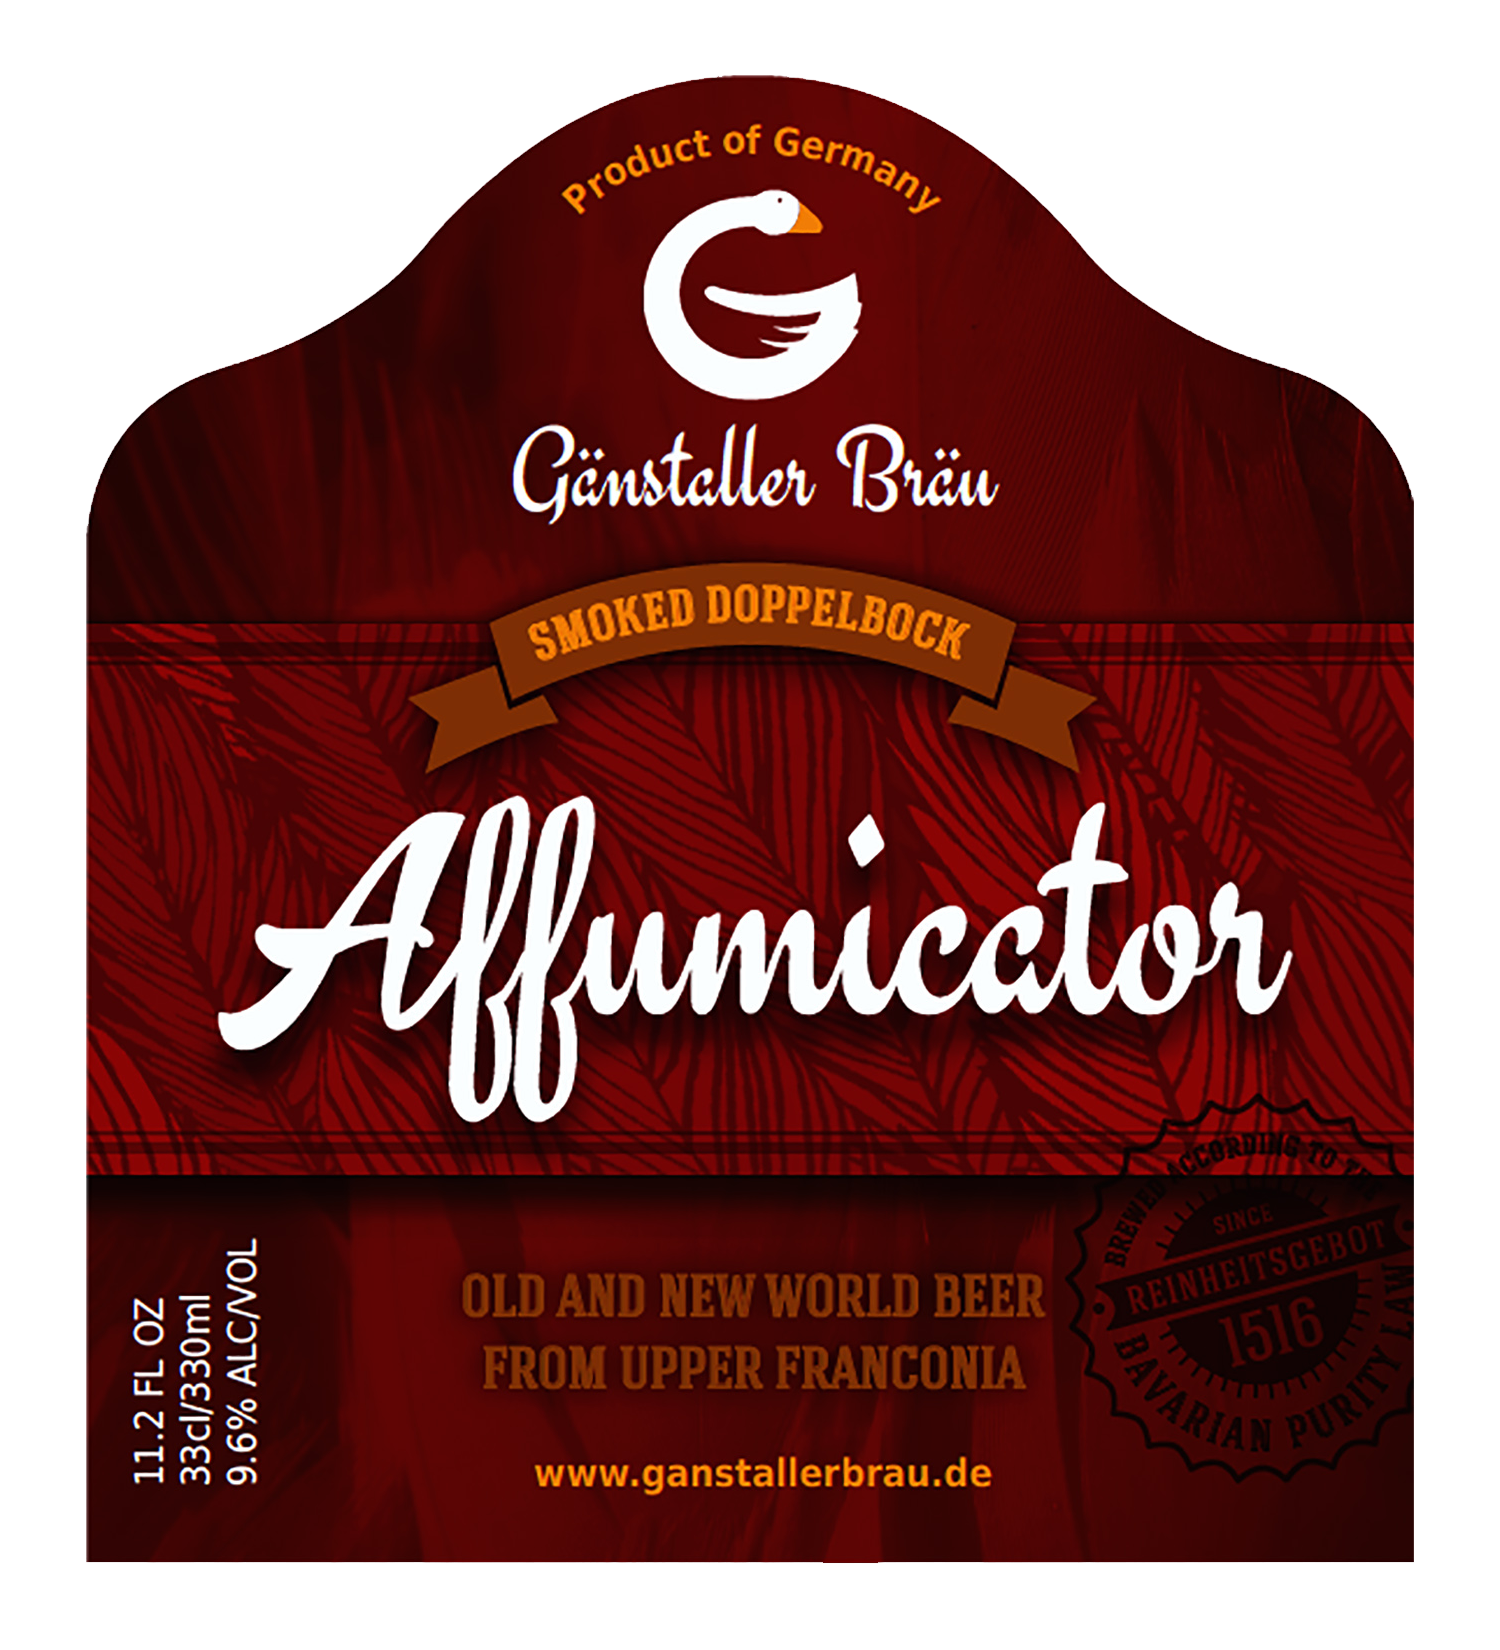 GANSTALLER affumicator